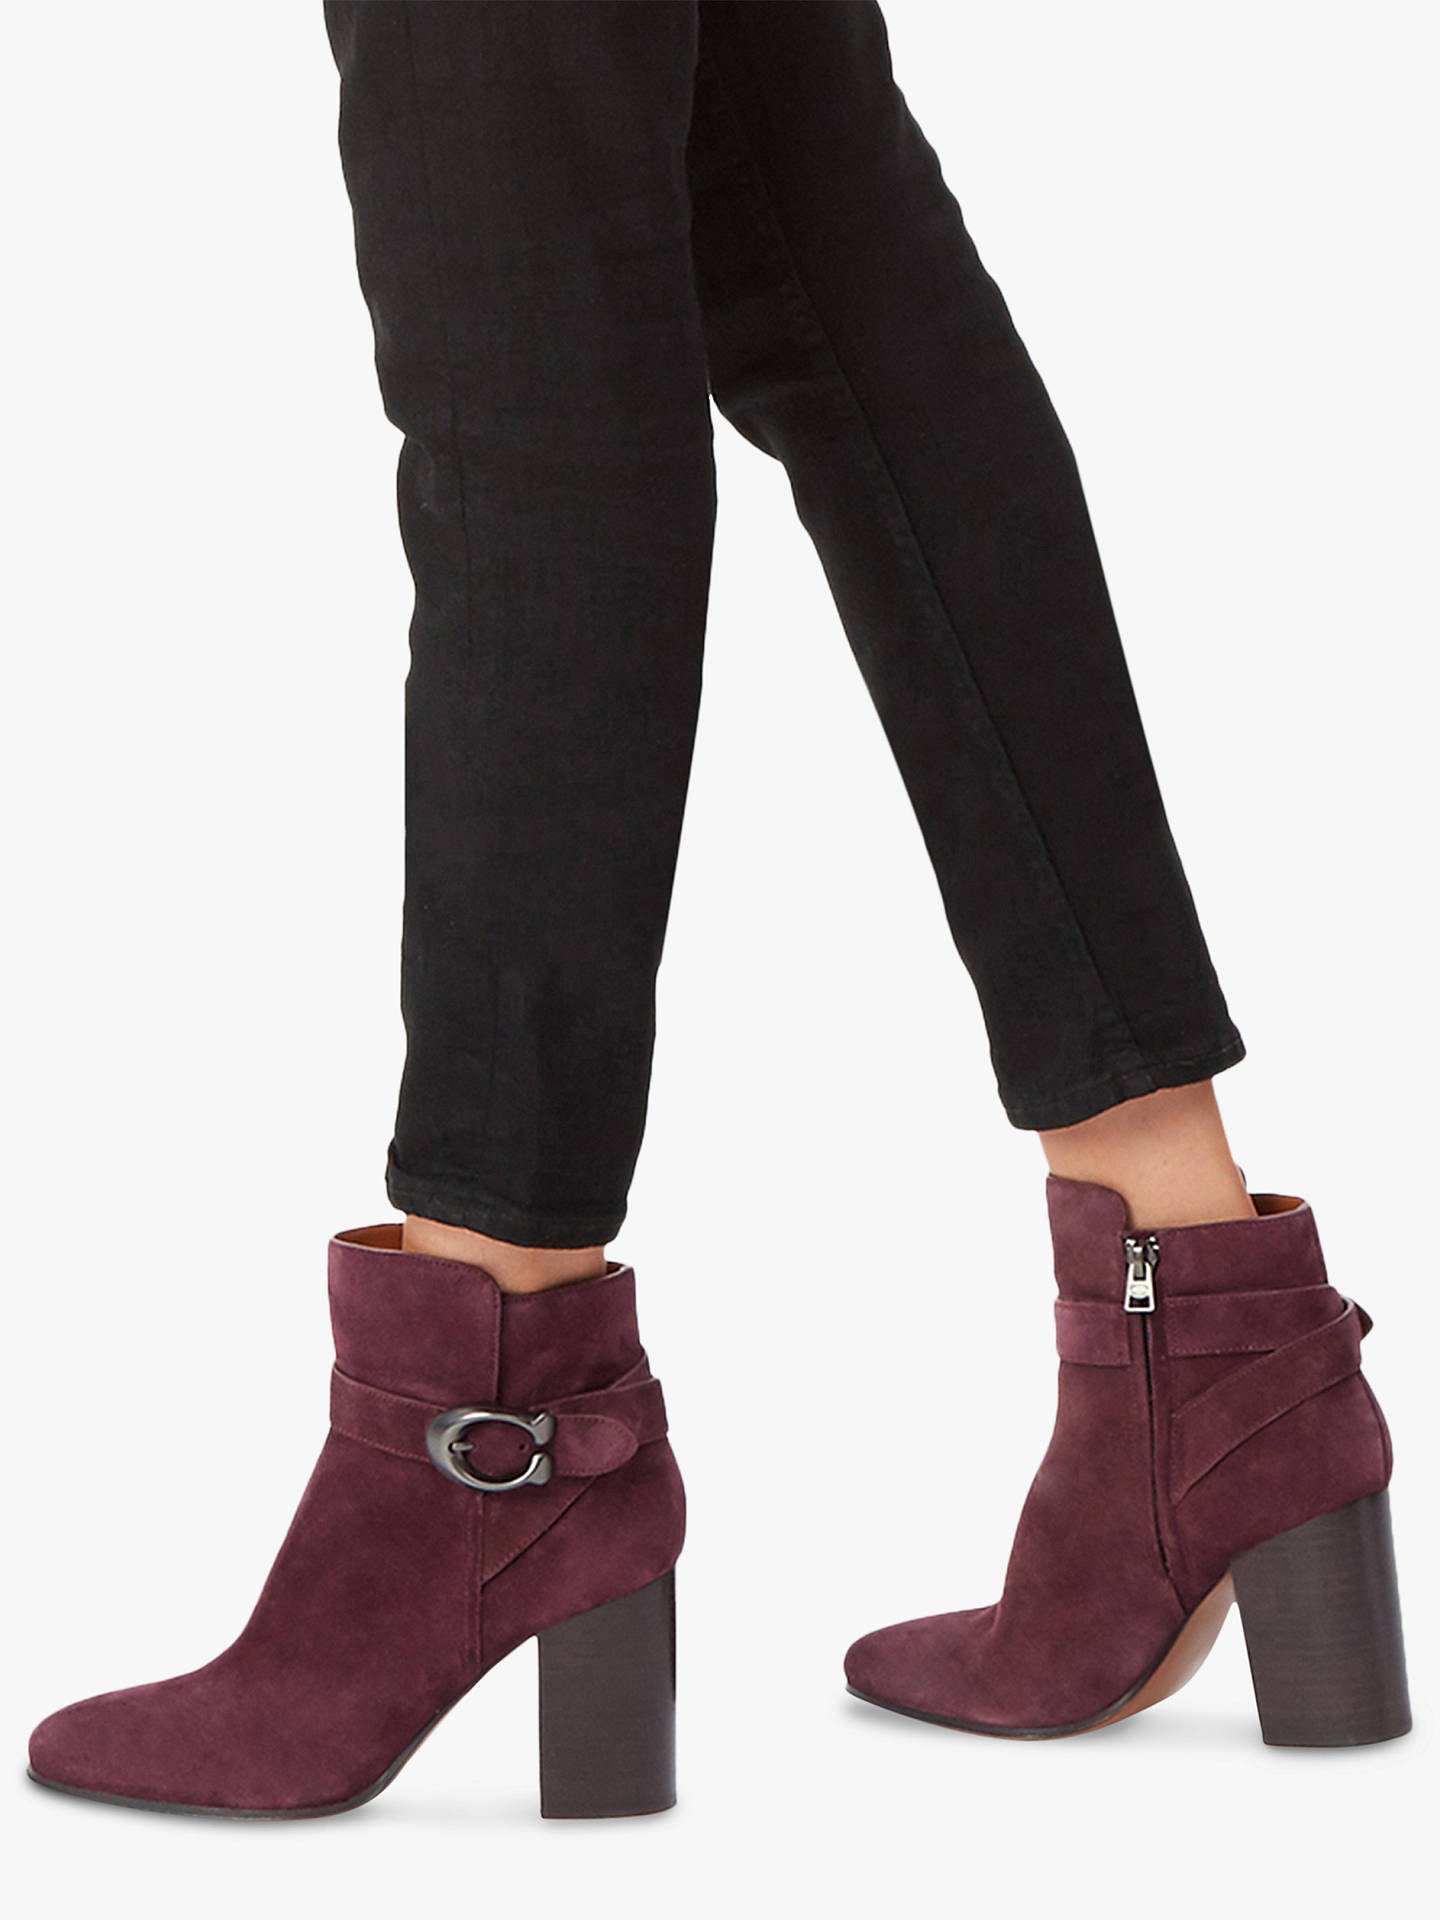 Coach Delaney Buckle Block Heel Ankle Boots at John Lewis